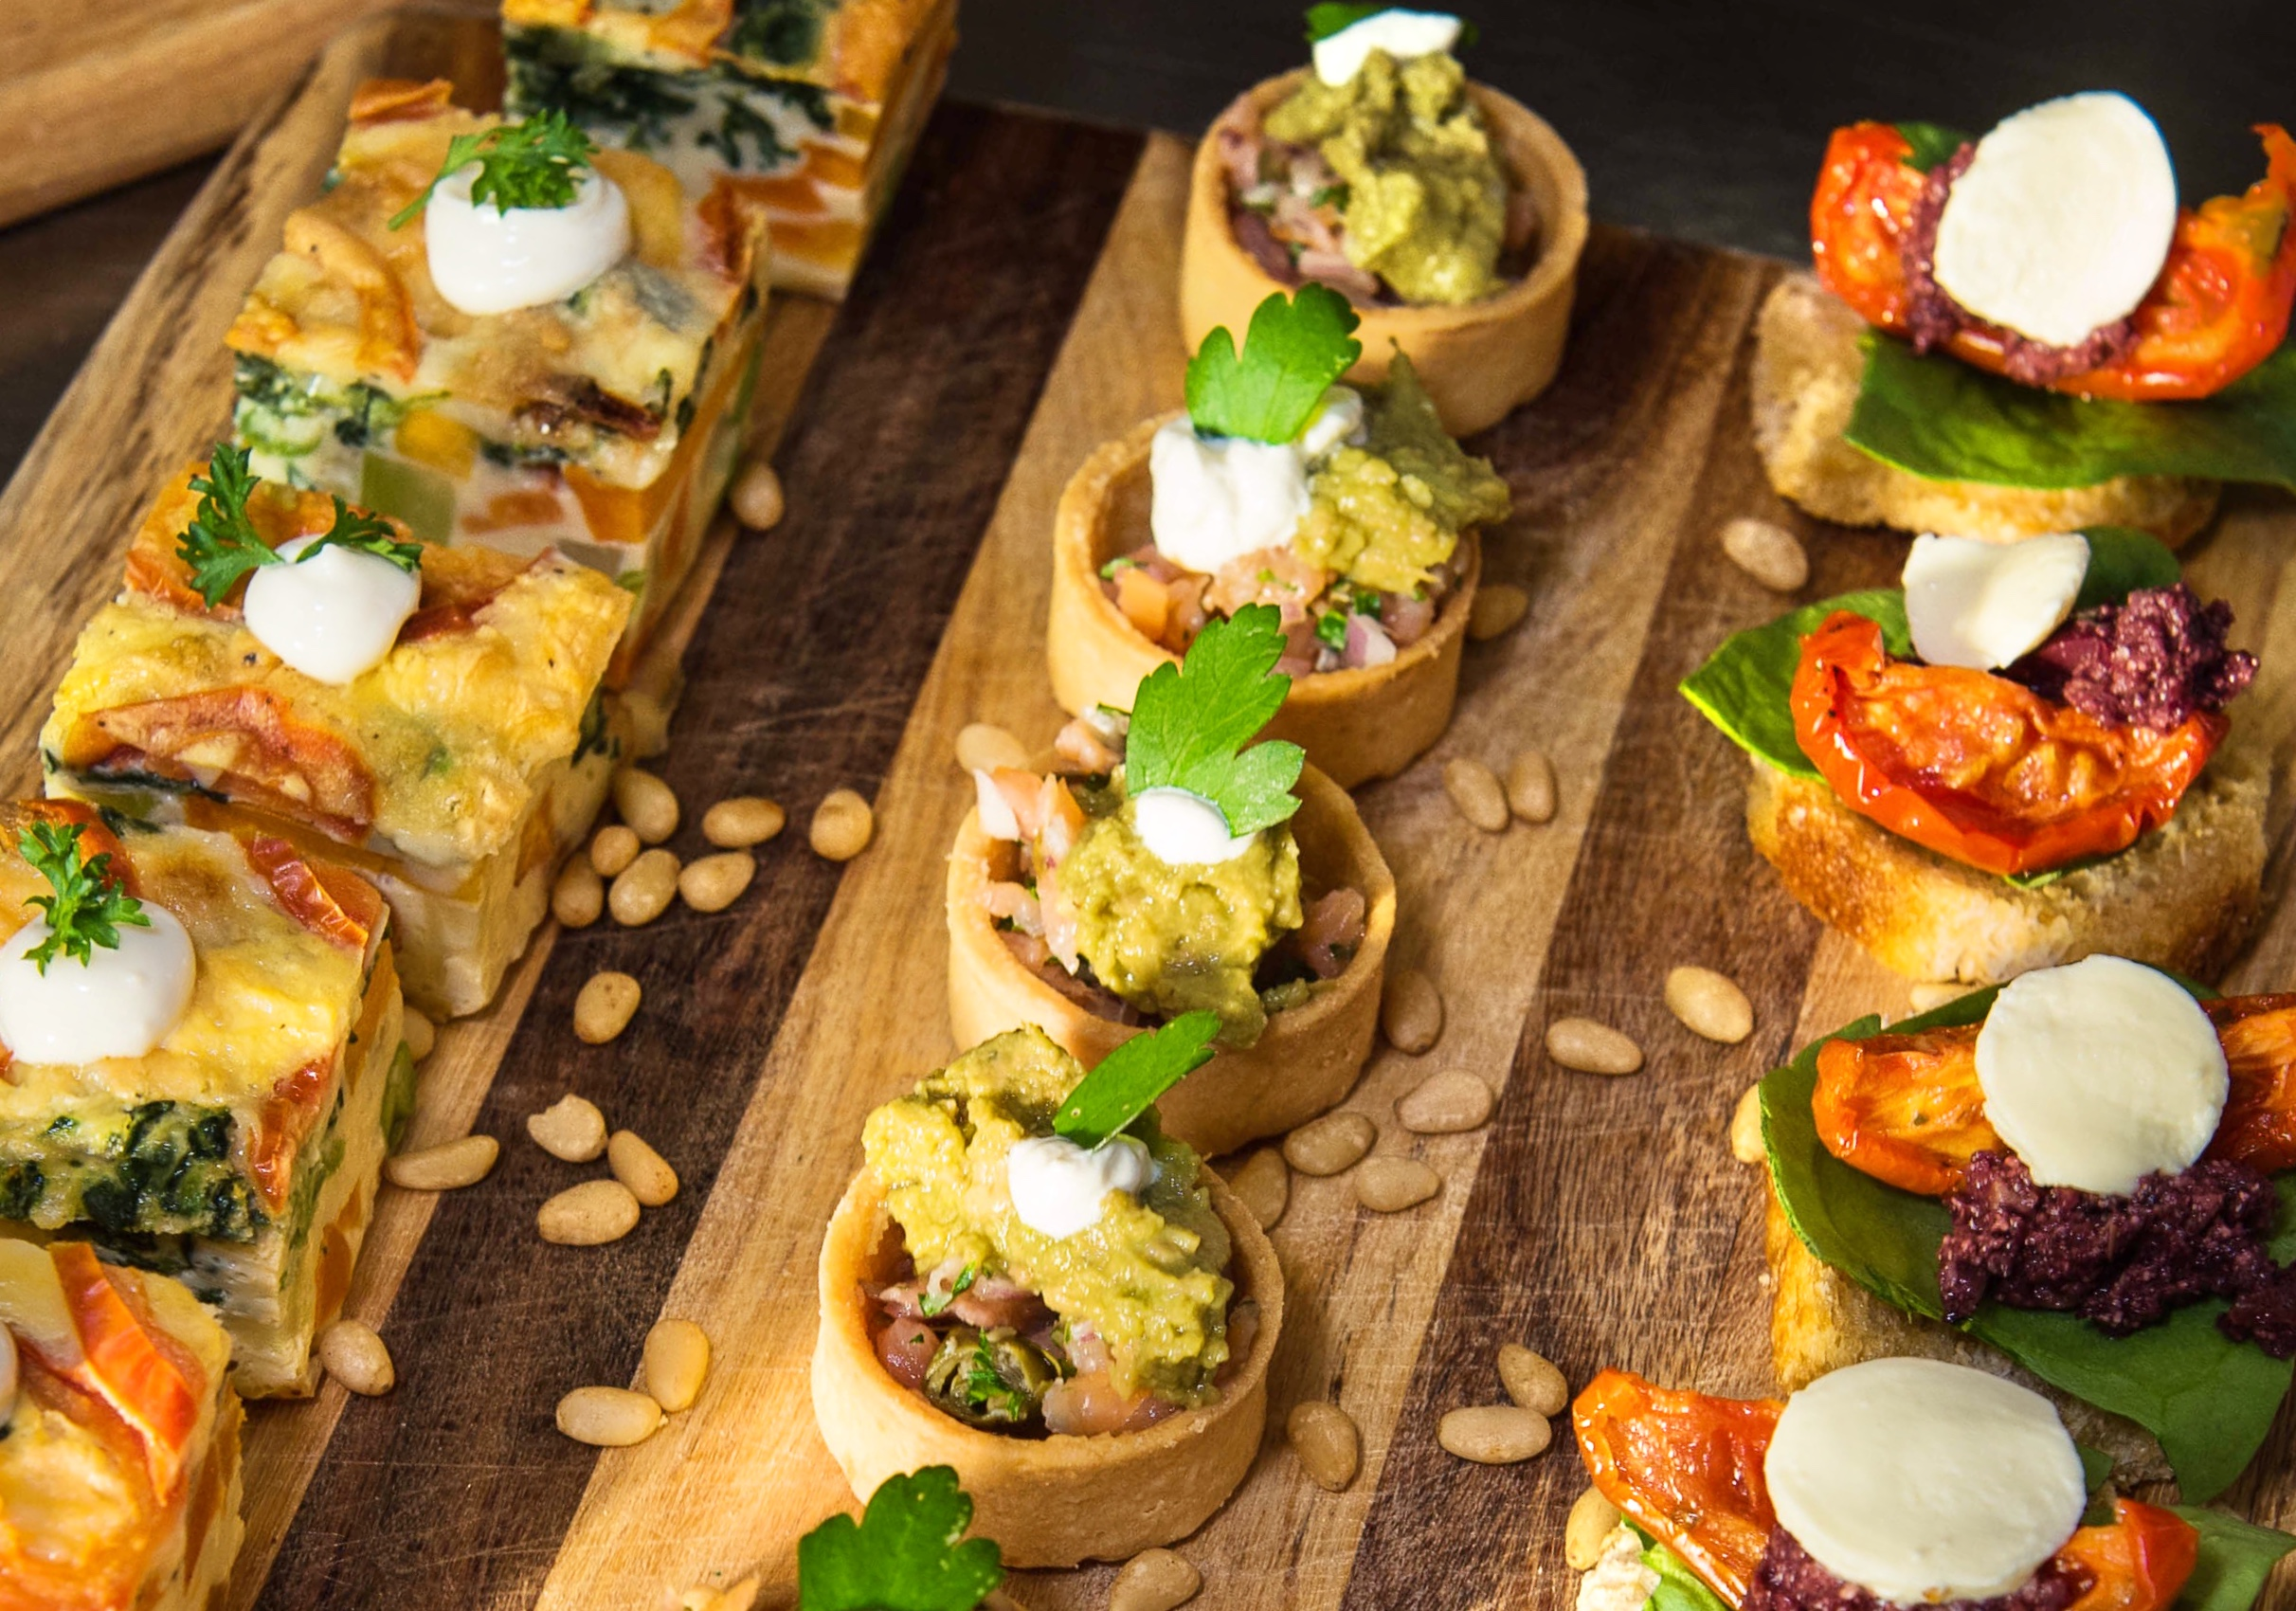 Deluxe wedding canapes 3 Course Plated or Buffet Meal